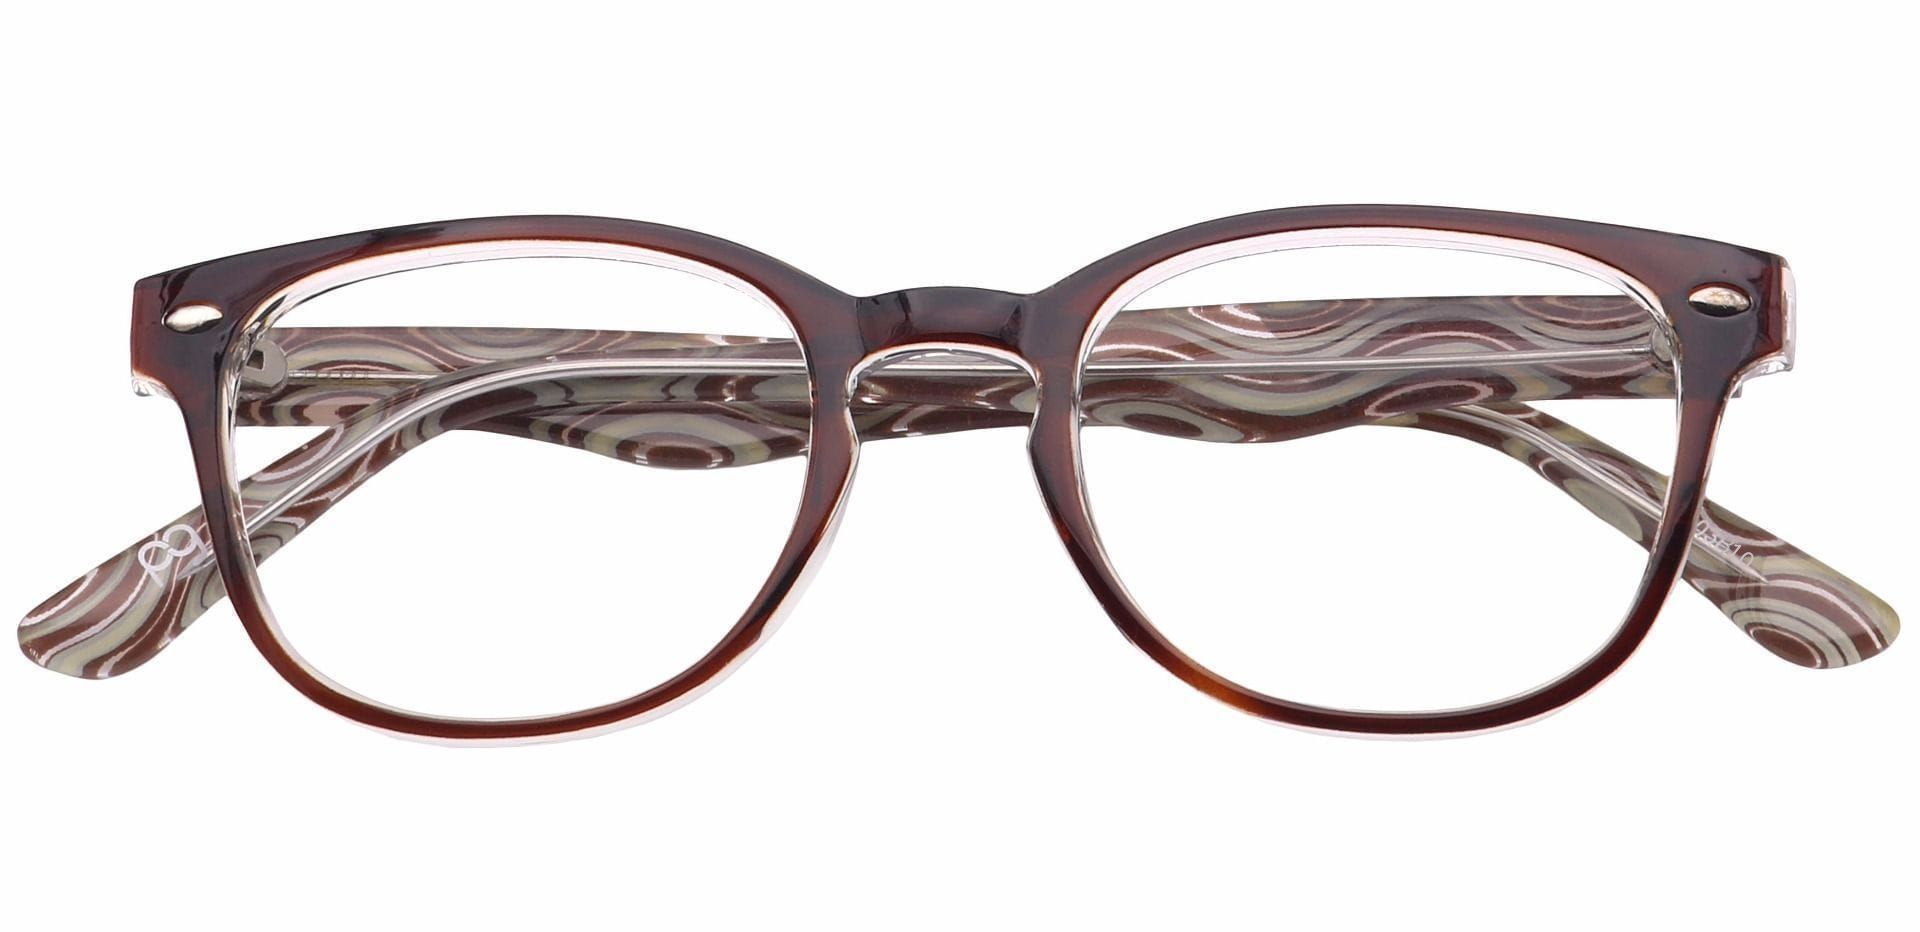 Swirl Classic Square Blue Light Blocking Glasses - Brown